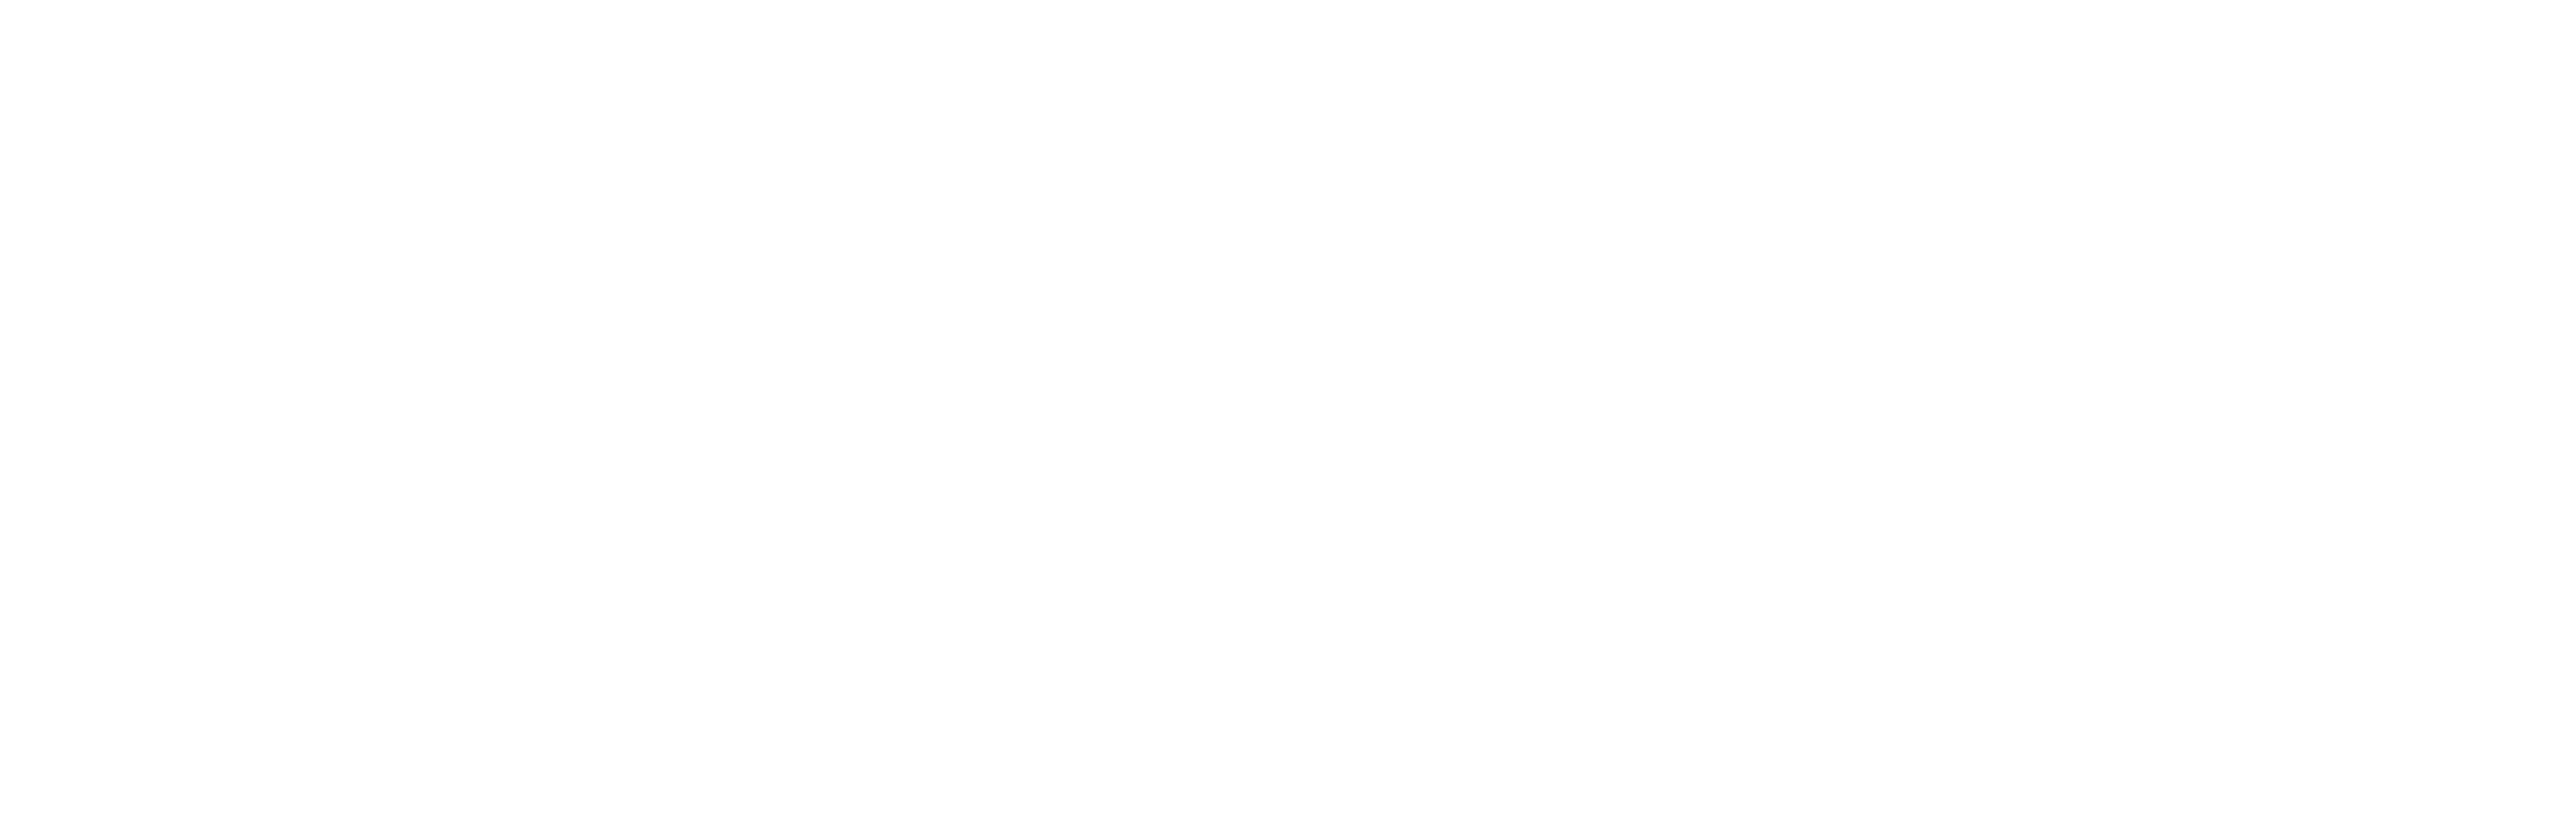 receive a free personalized analysis header image in white